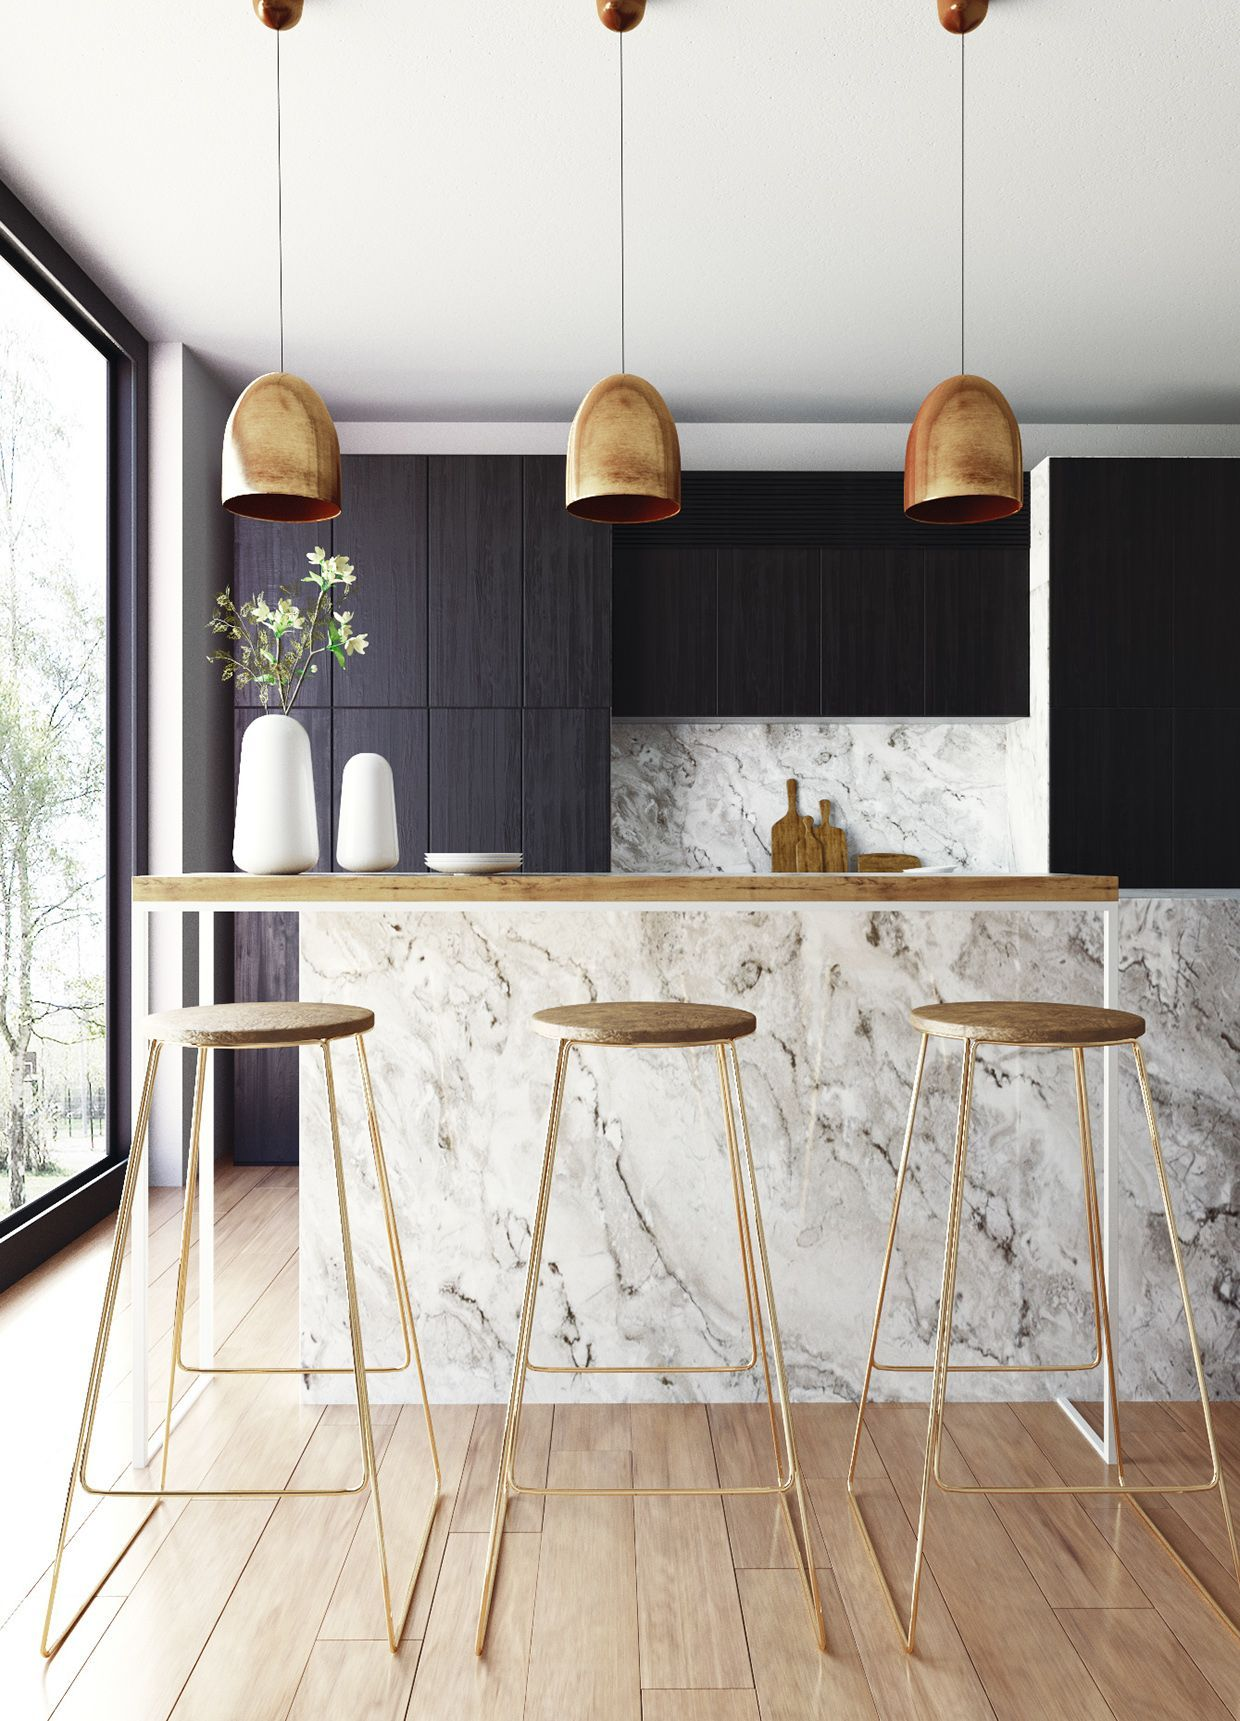 Learn More About How To Style Your Kitchen Design Into The Coolest Aesthetic Www Ligh Scandinavian Kitchen Design Home Decor Kitchen Kitchen Lighting Design